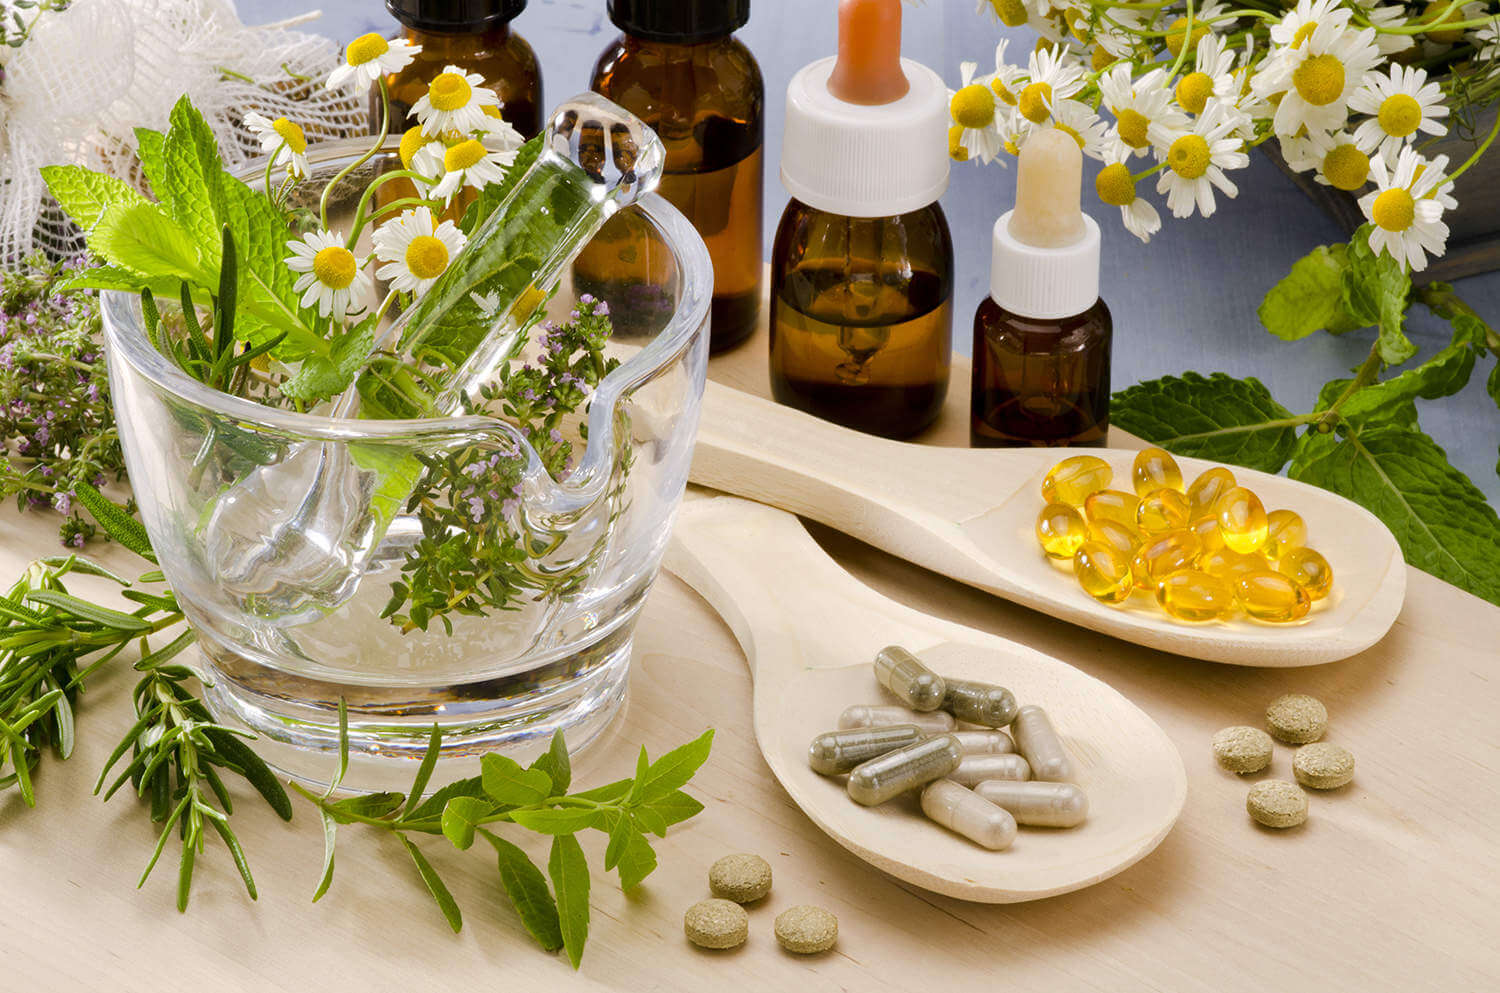 Natural products industry and pharma collaboration